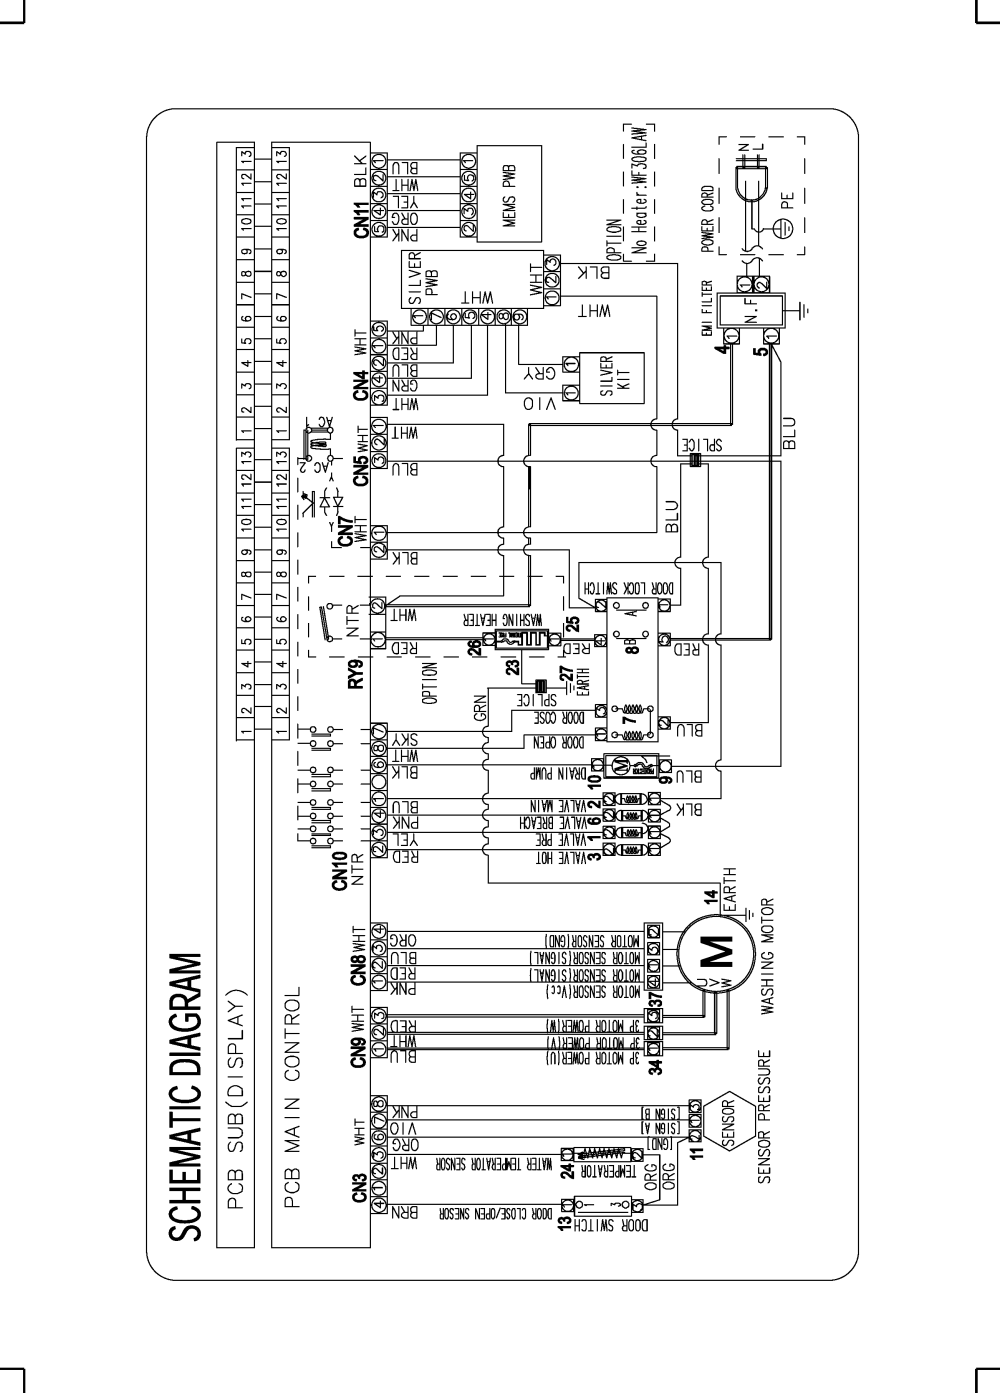 medium resolution of samsung wire harness diagram wiring diagram basic samsung wire harness diagram